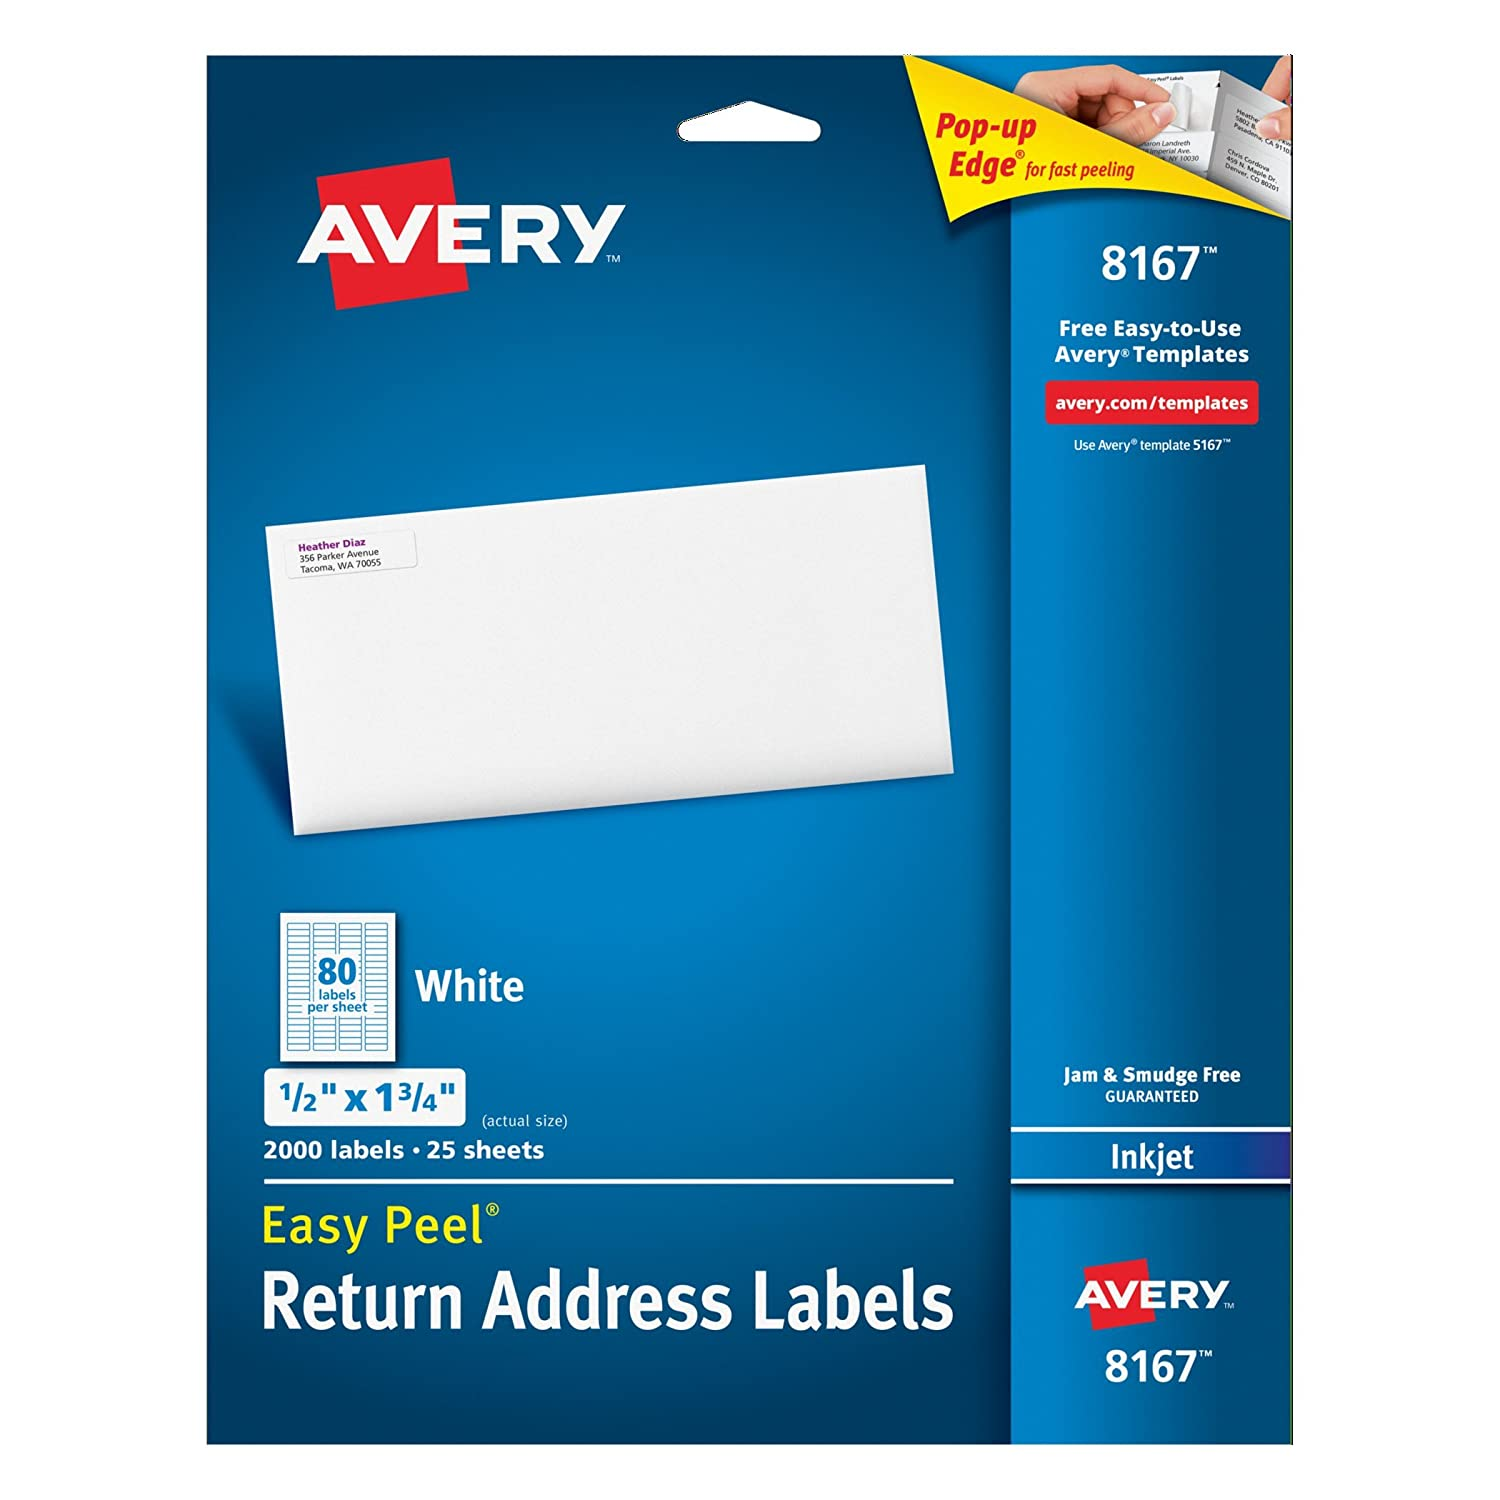 avery 5267 template excel